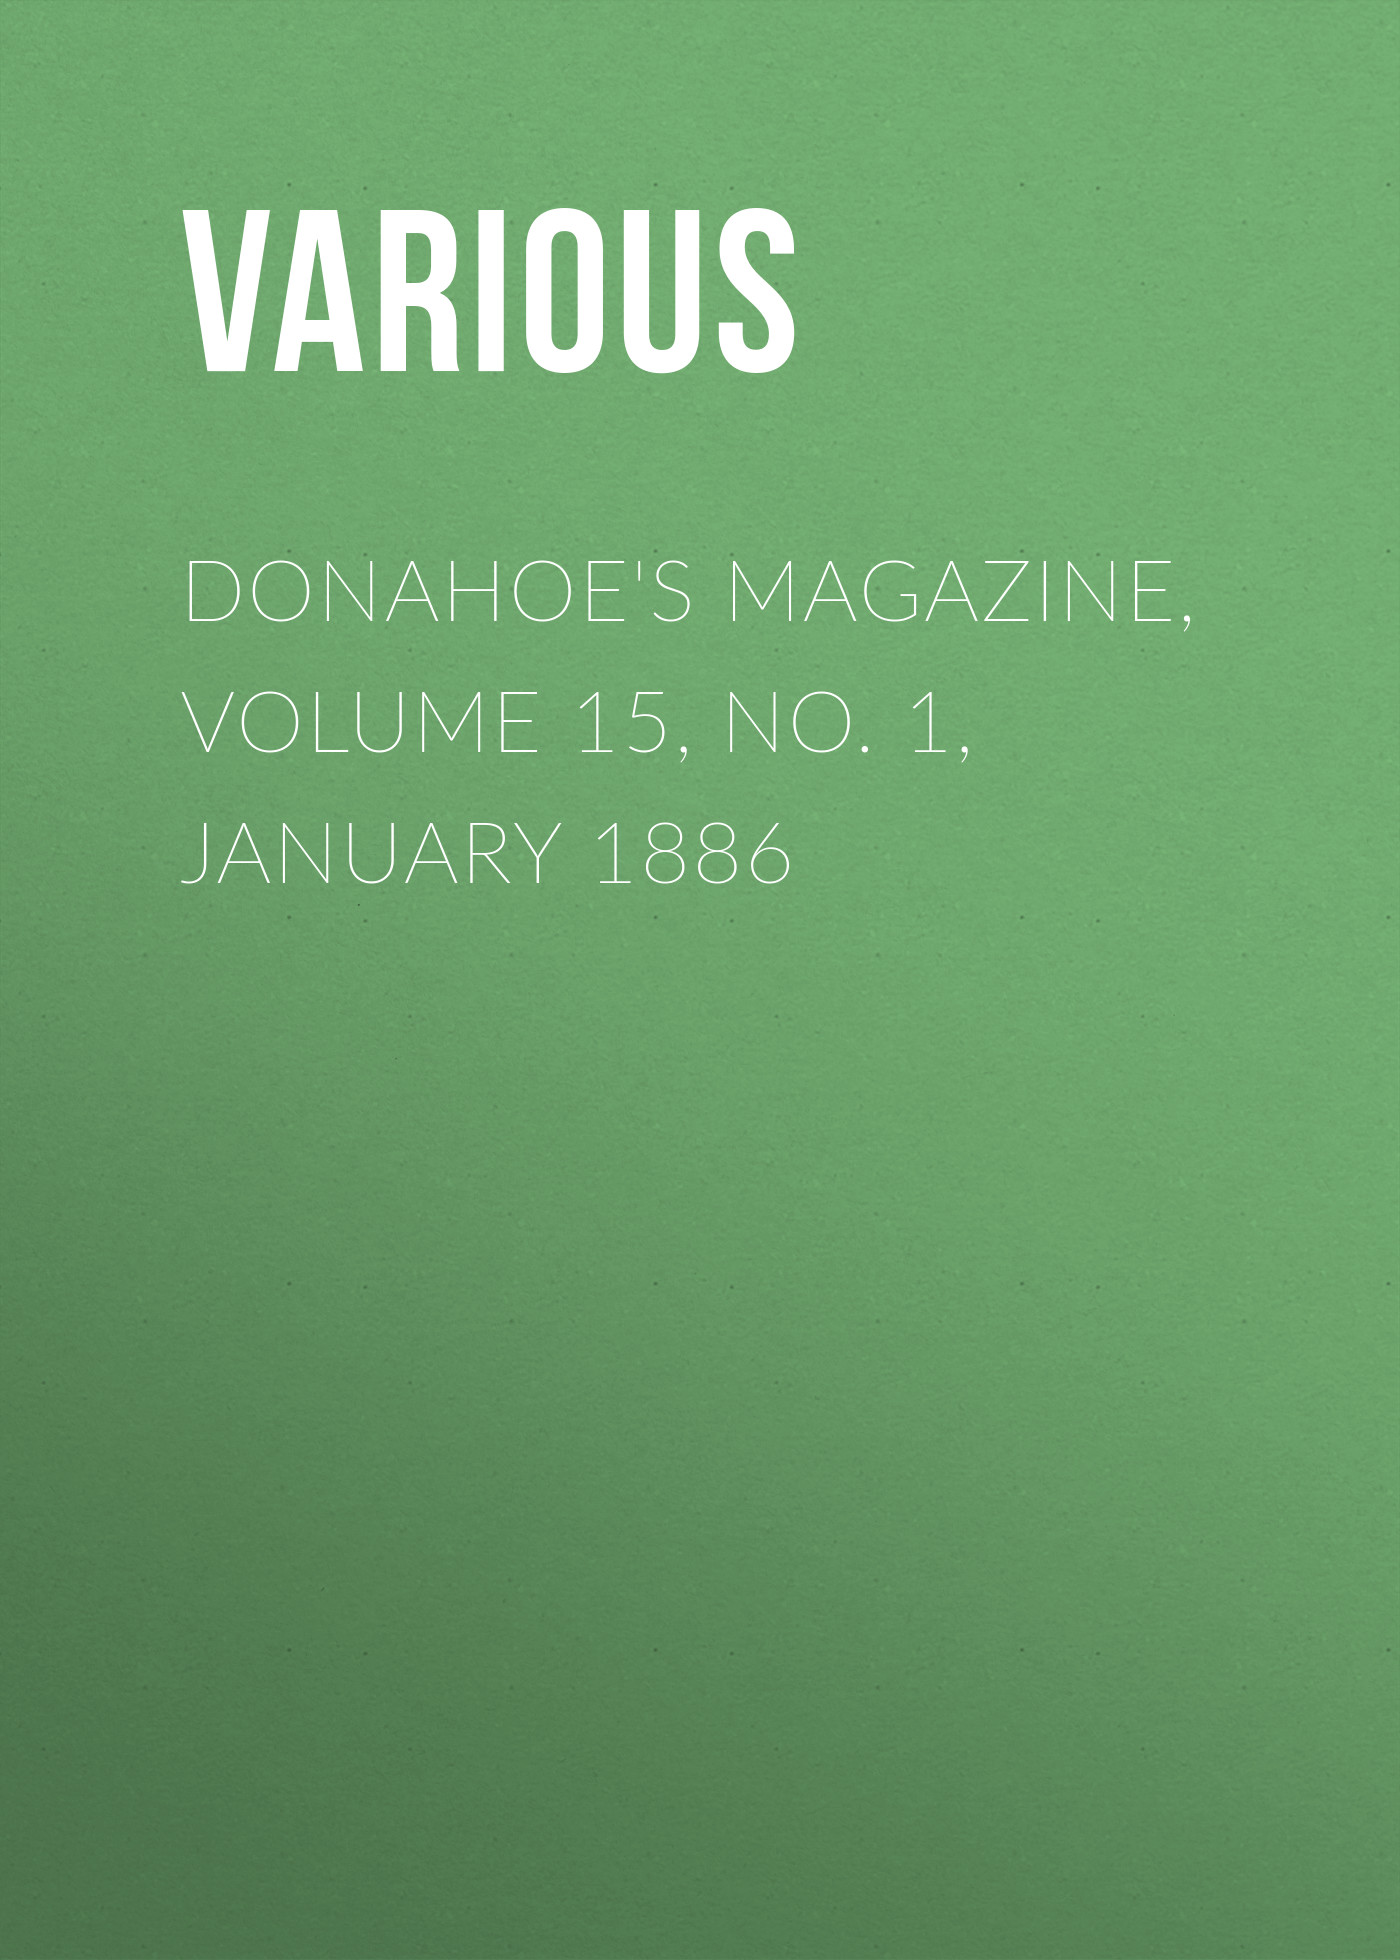 Various Donahoes Magazine, Volume 15, No. 1, January 1886